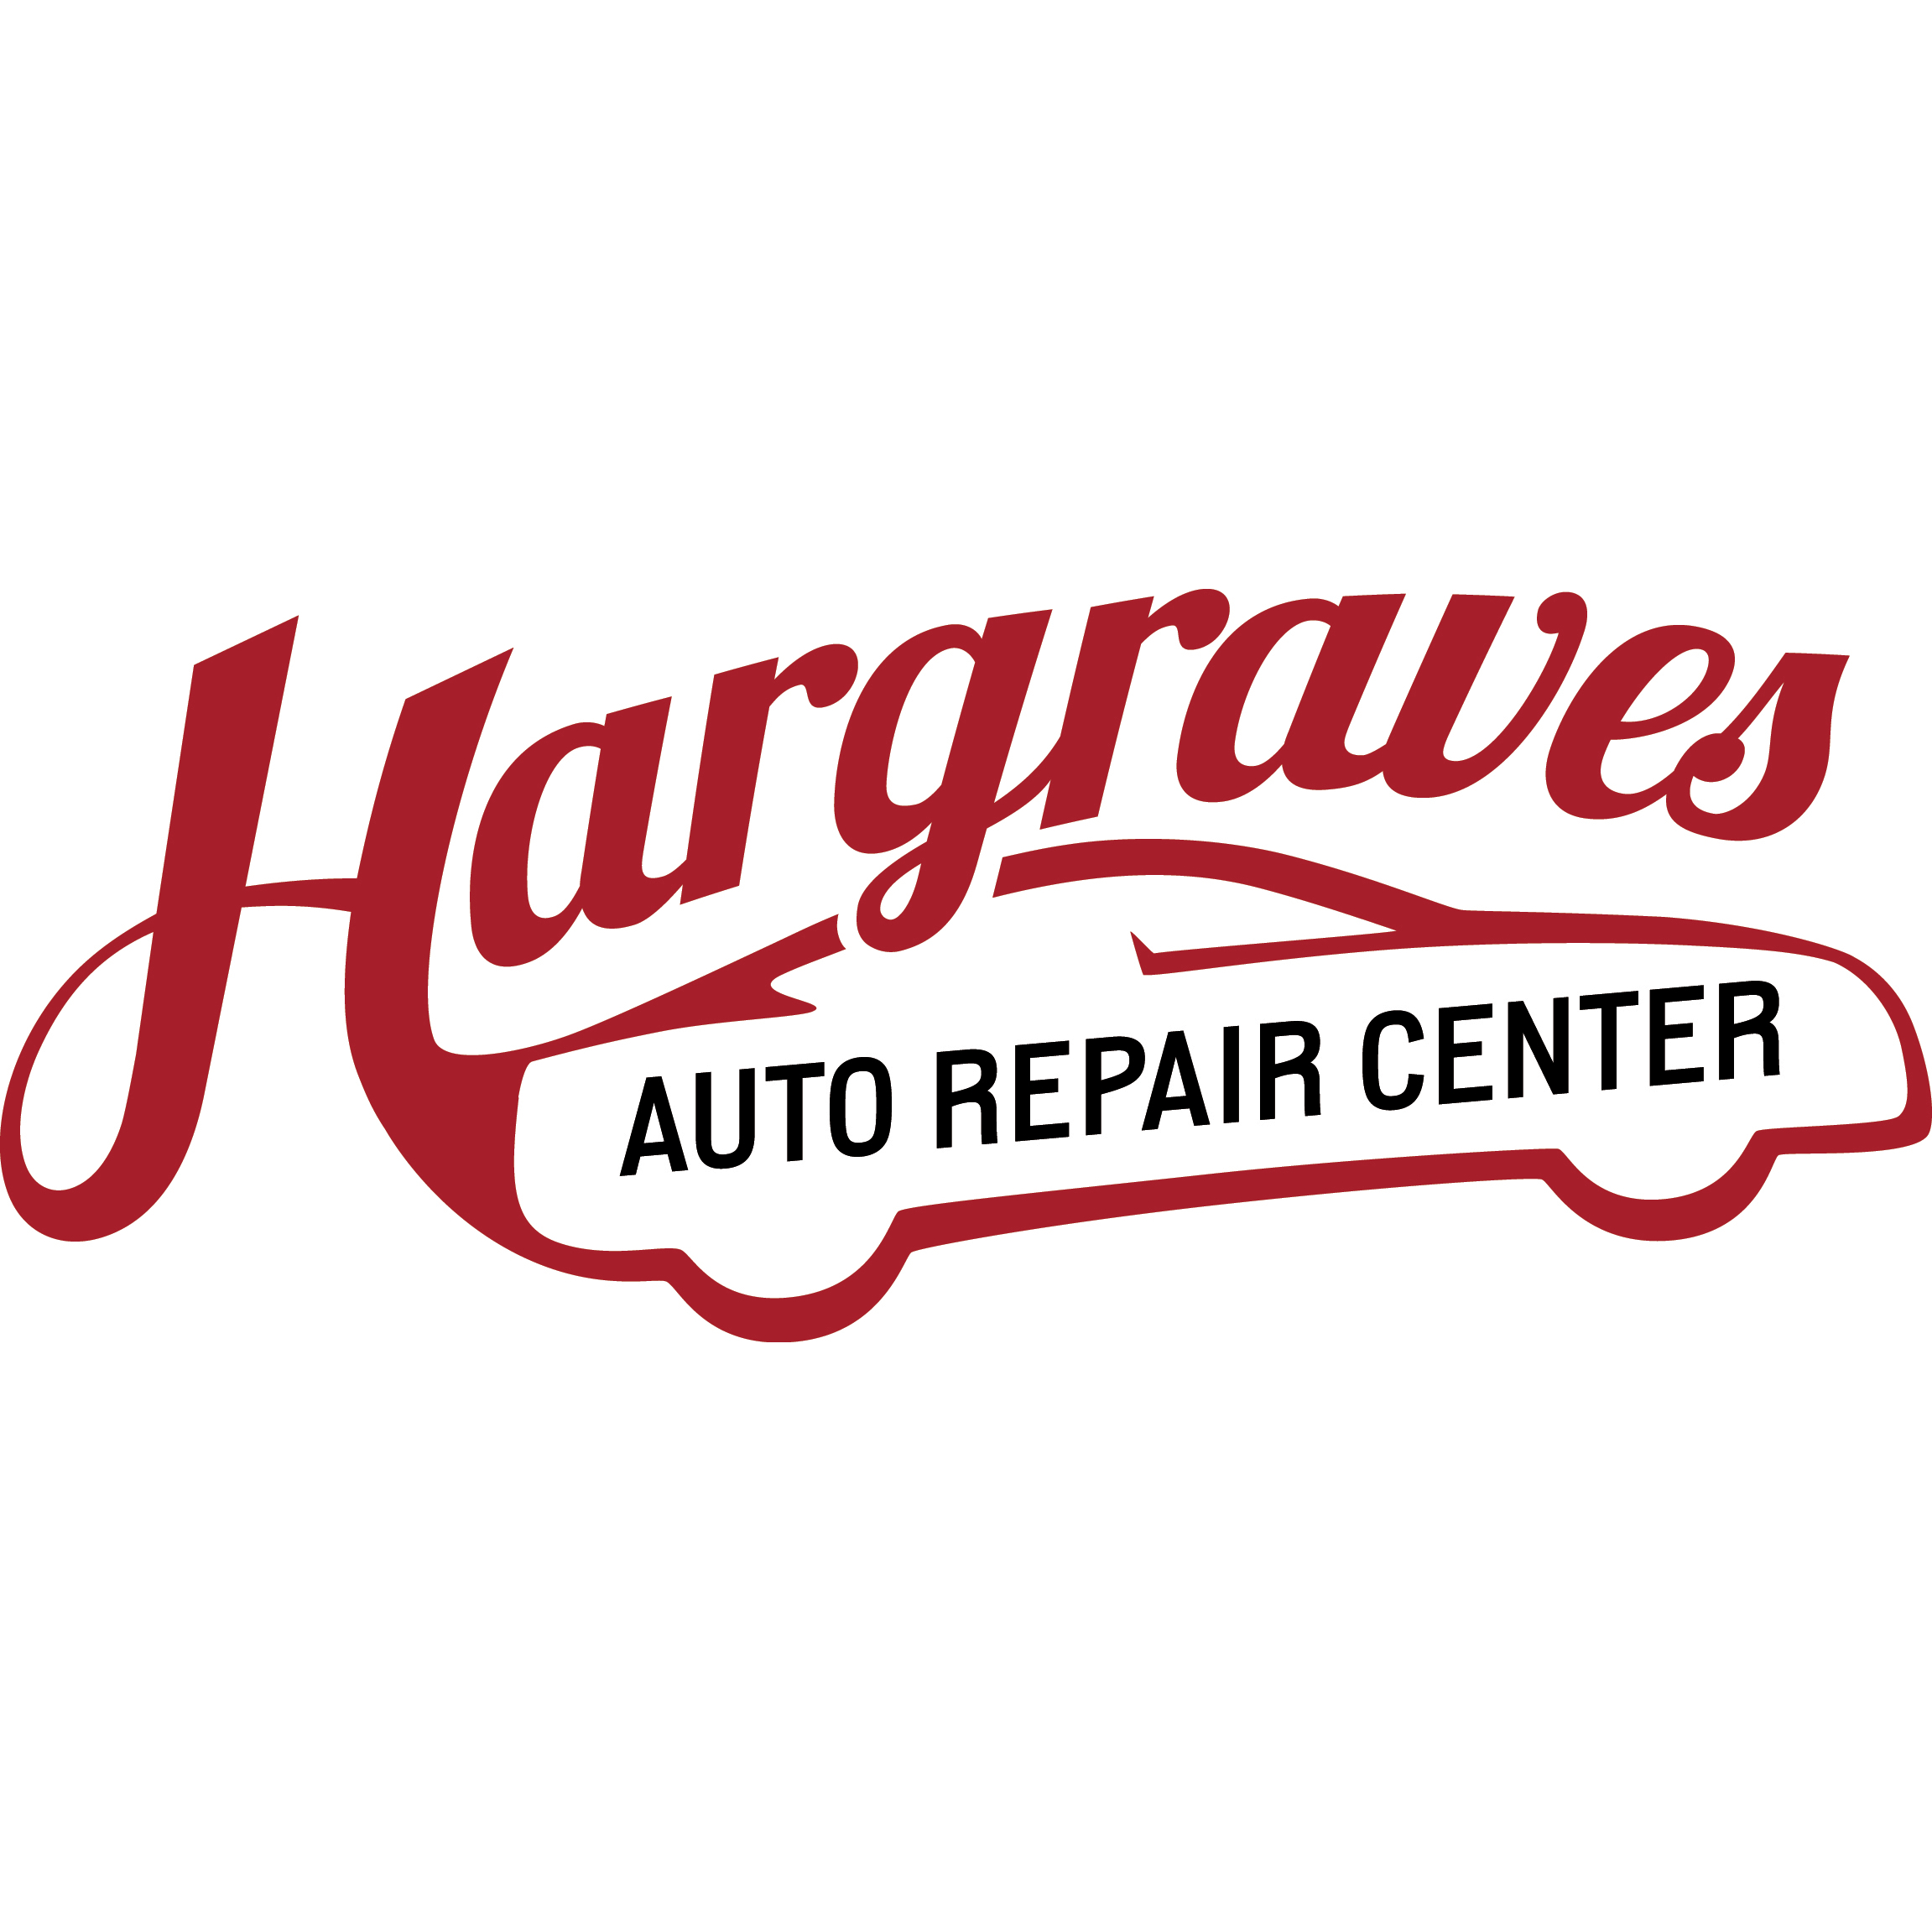 Hargraves Auto Repair Center